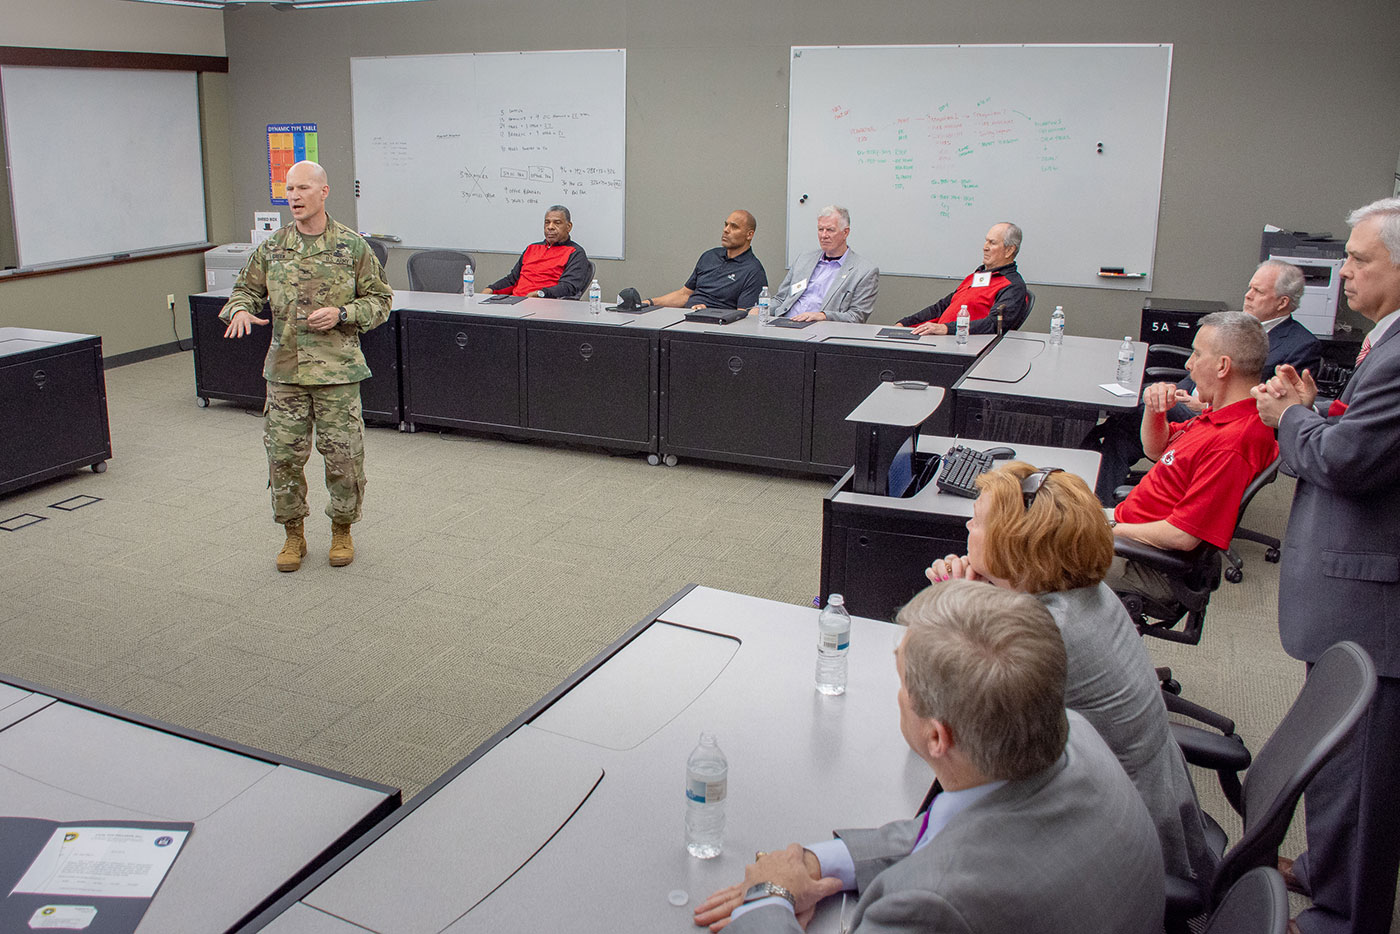 Col. Scott Green, director of CGSC's Department of Army Tactics, left, briefs the Kansas City Chiefs Ambassadors during their visit April 18. (photos by Dan Neal/ArmyU Public Affairs)